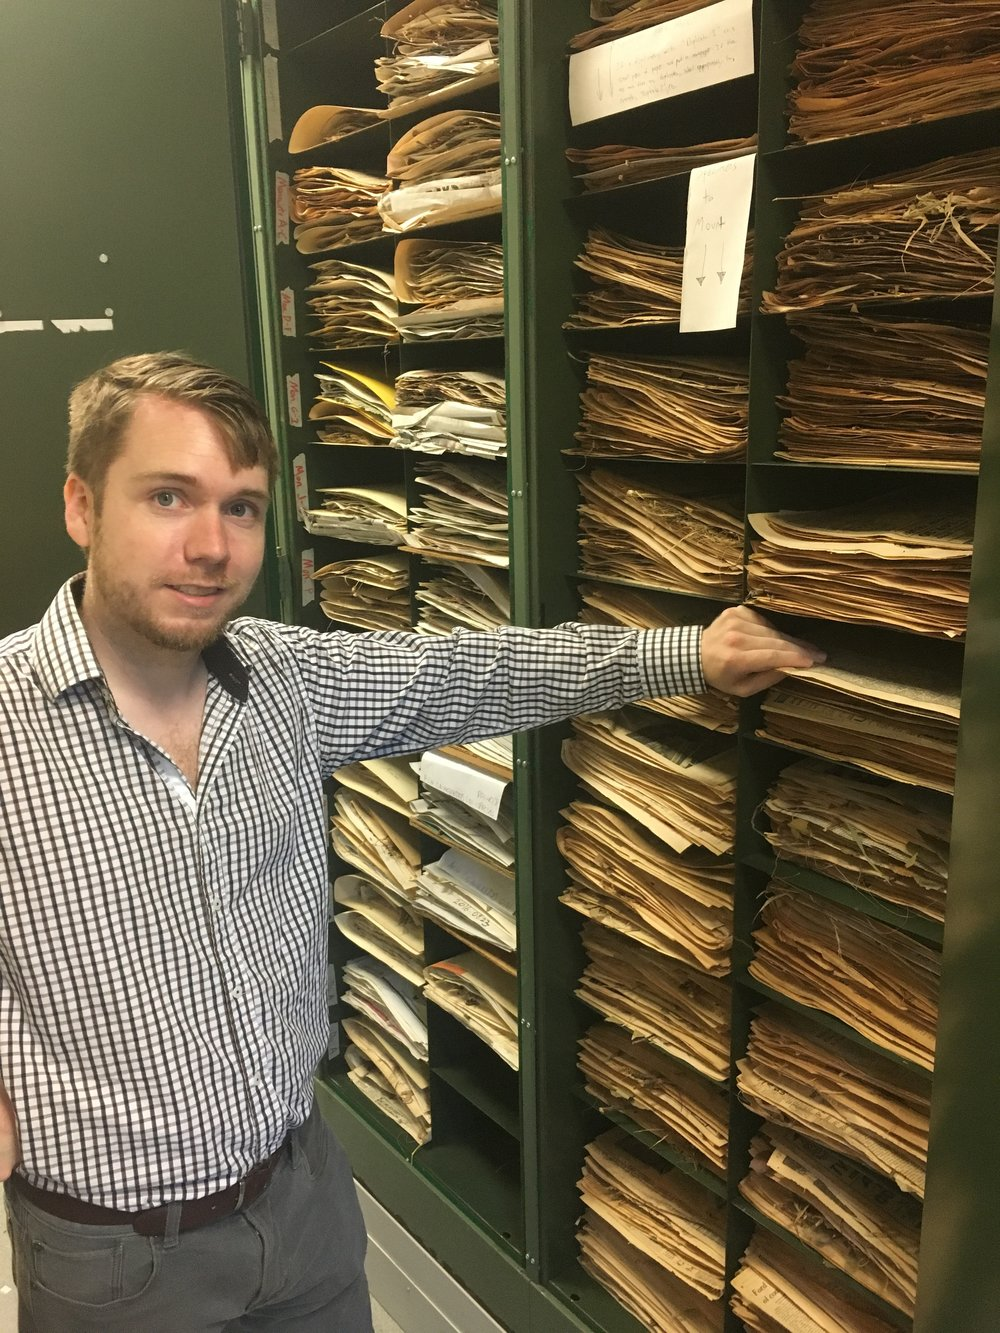 APSU Herbarium Collections Manager and SGI Research Associate, Mason Brock, shows off the collections in the APSU Herbarium.